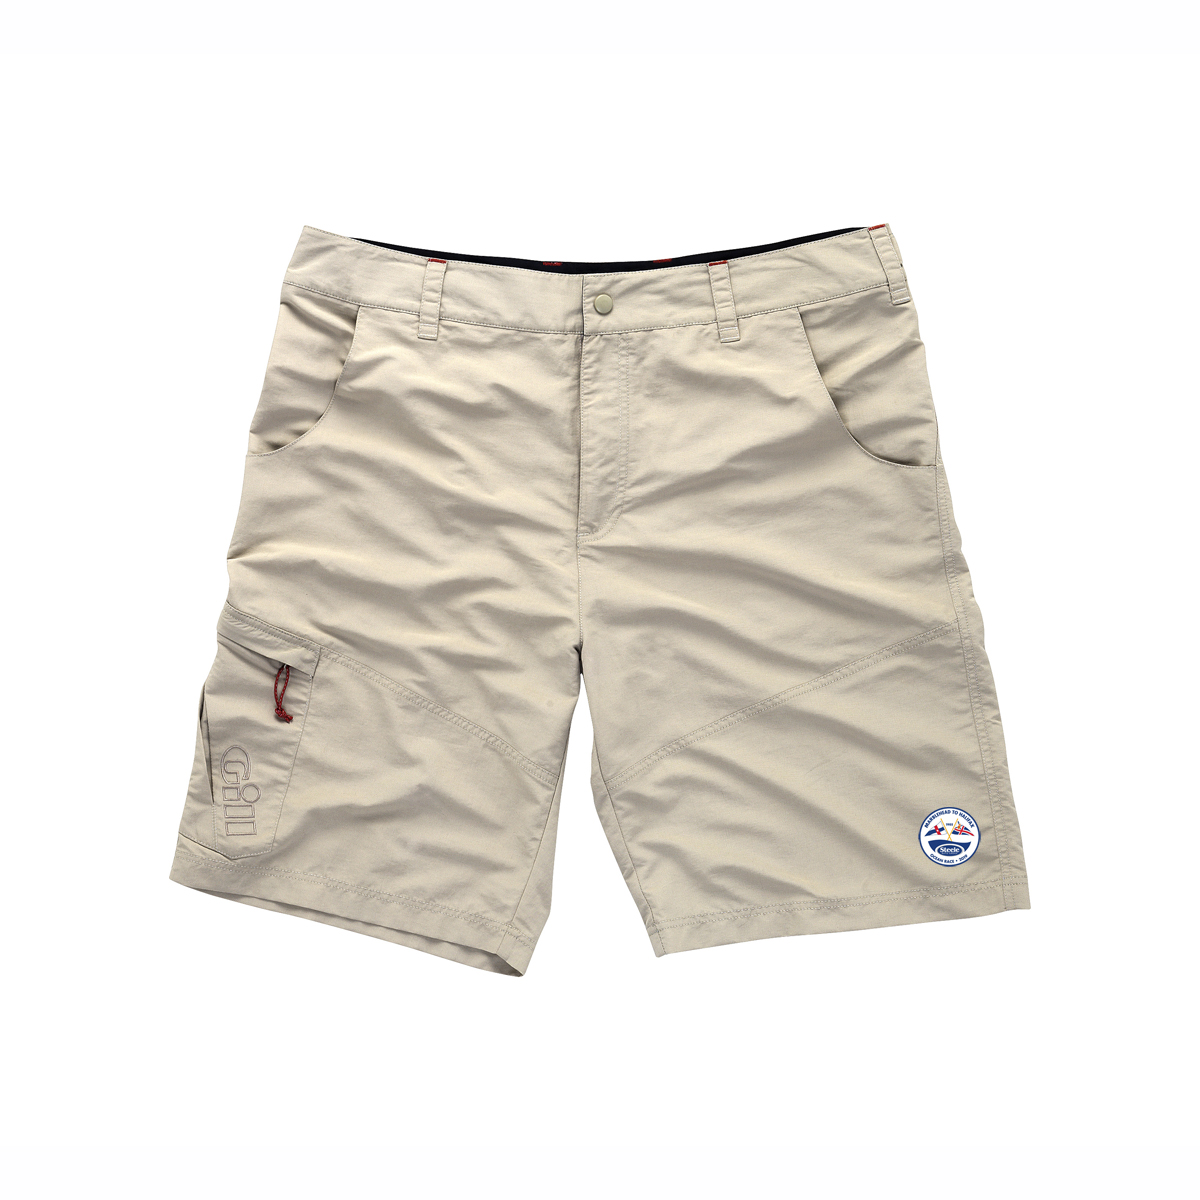 Marblehead to Halifax Ocean Race 2019 - Men's Tech Shorts